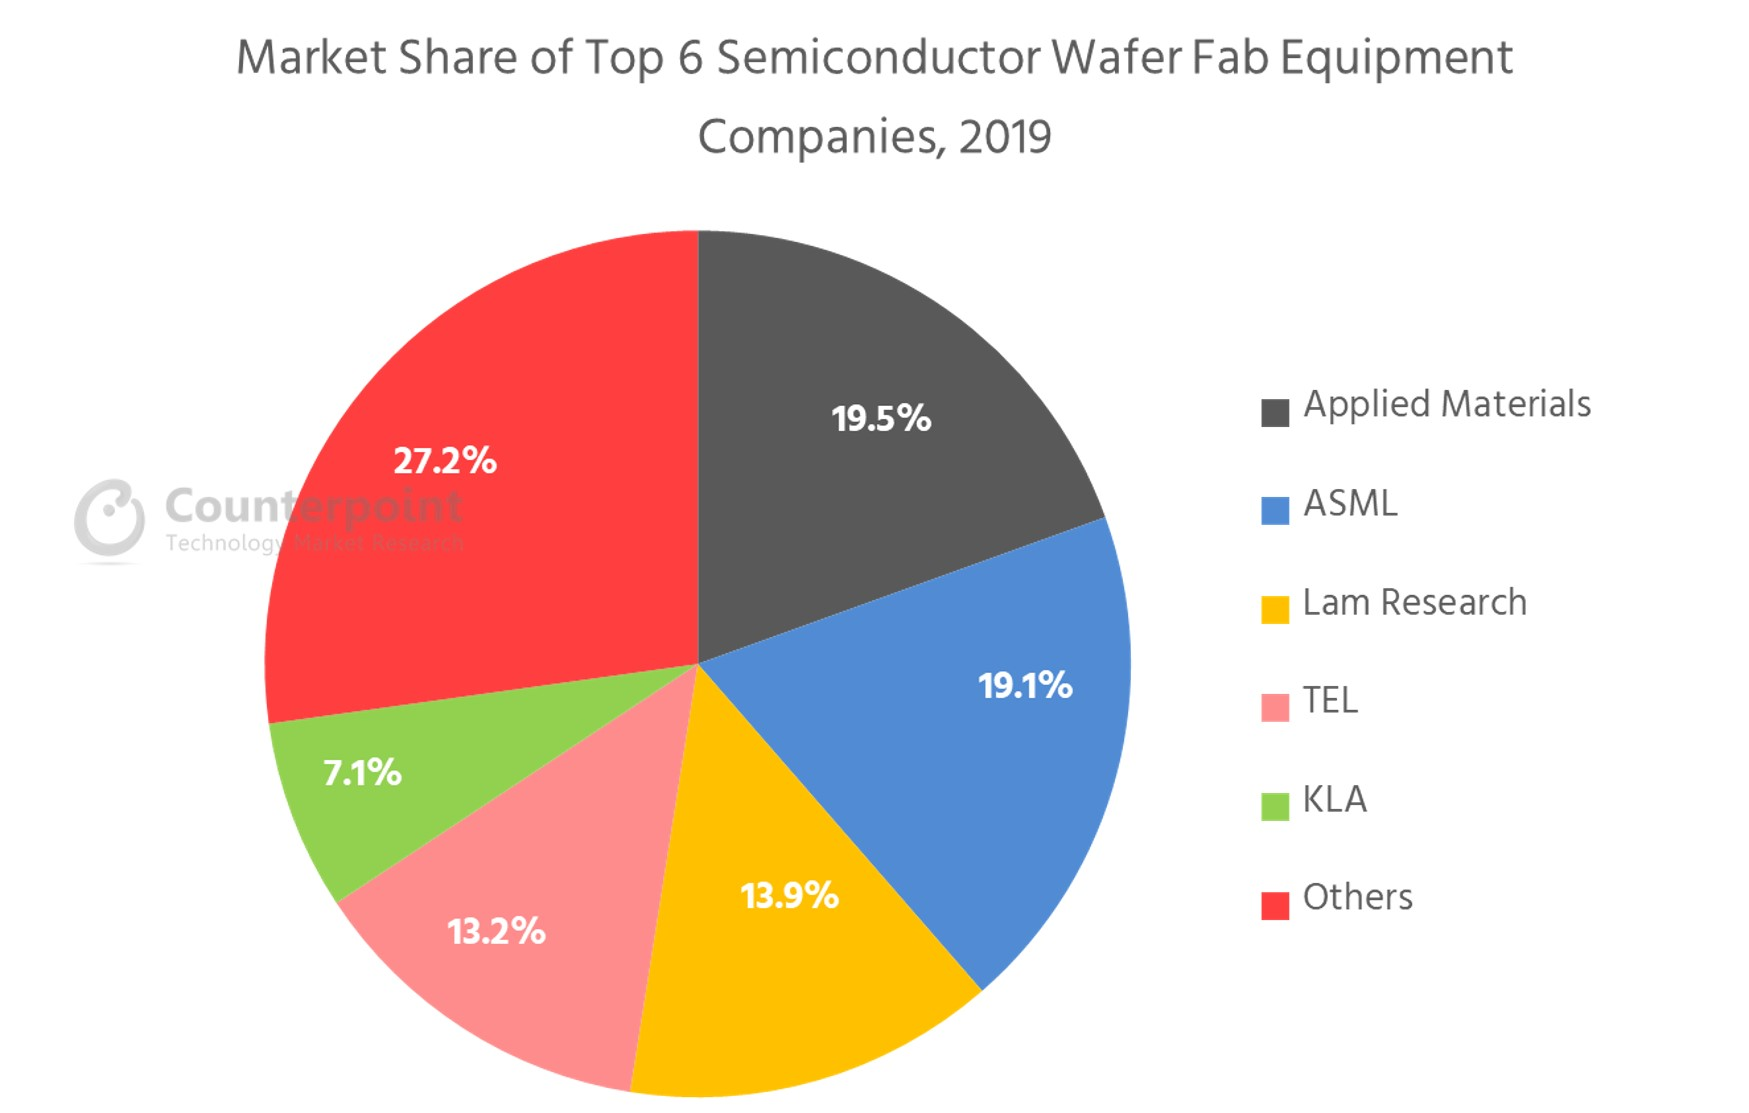 Counterpoint Market Share of Top 6 Semiconductor Wafer Fab Equipment Companies, 2019